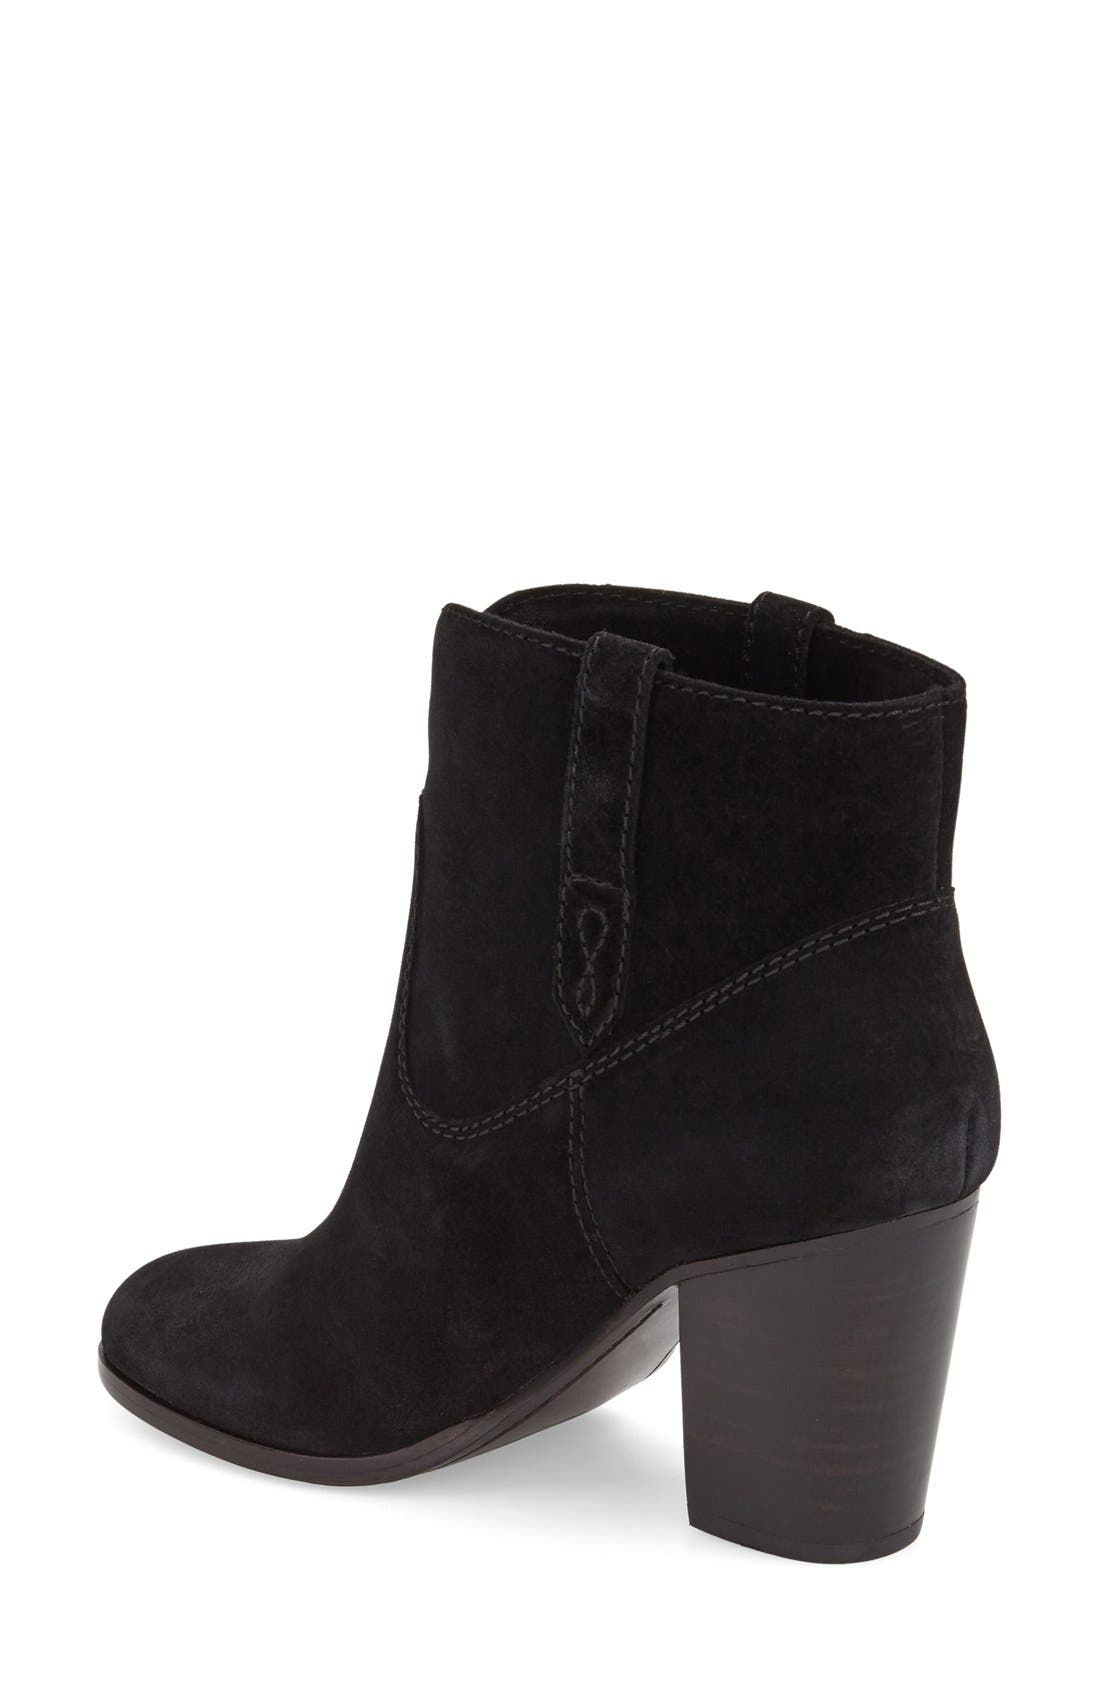 FRYE,                             'Myra' Bootie,                             Alternate thumbnail 2, color,                             001